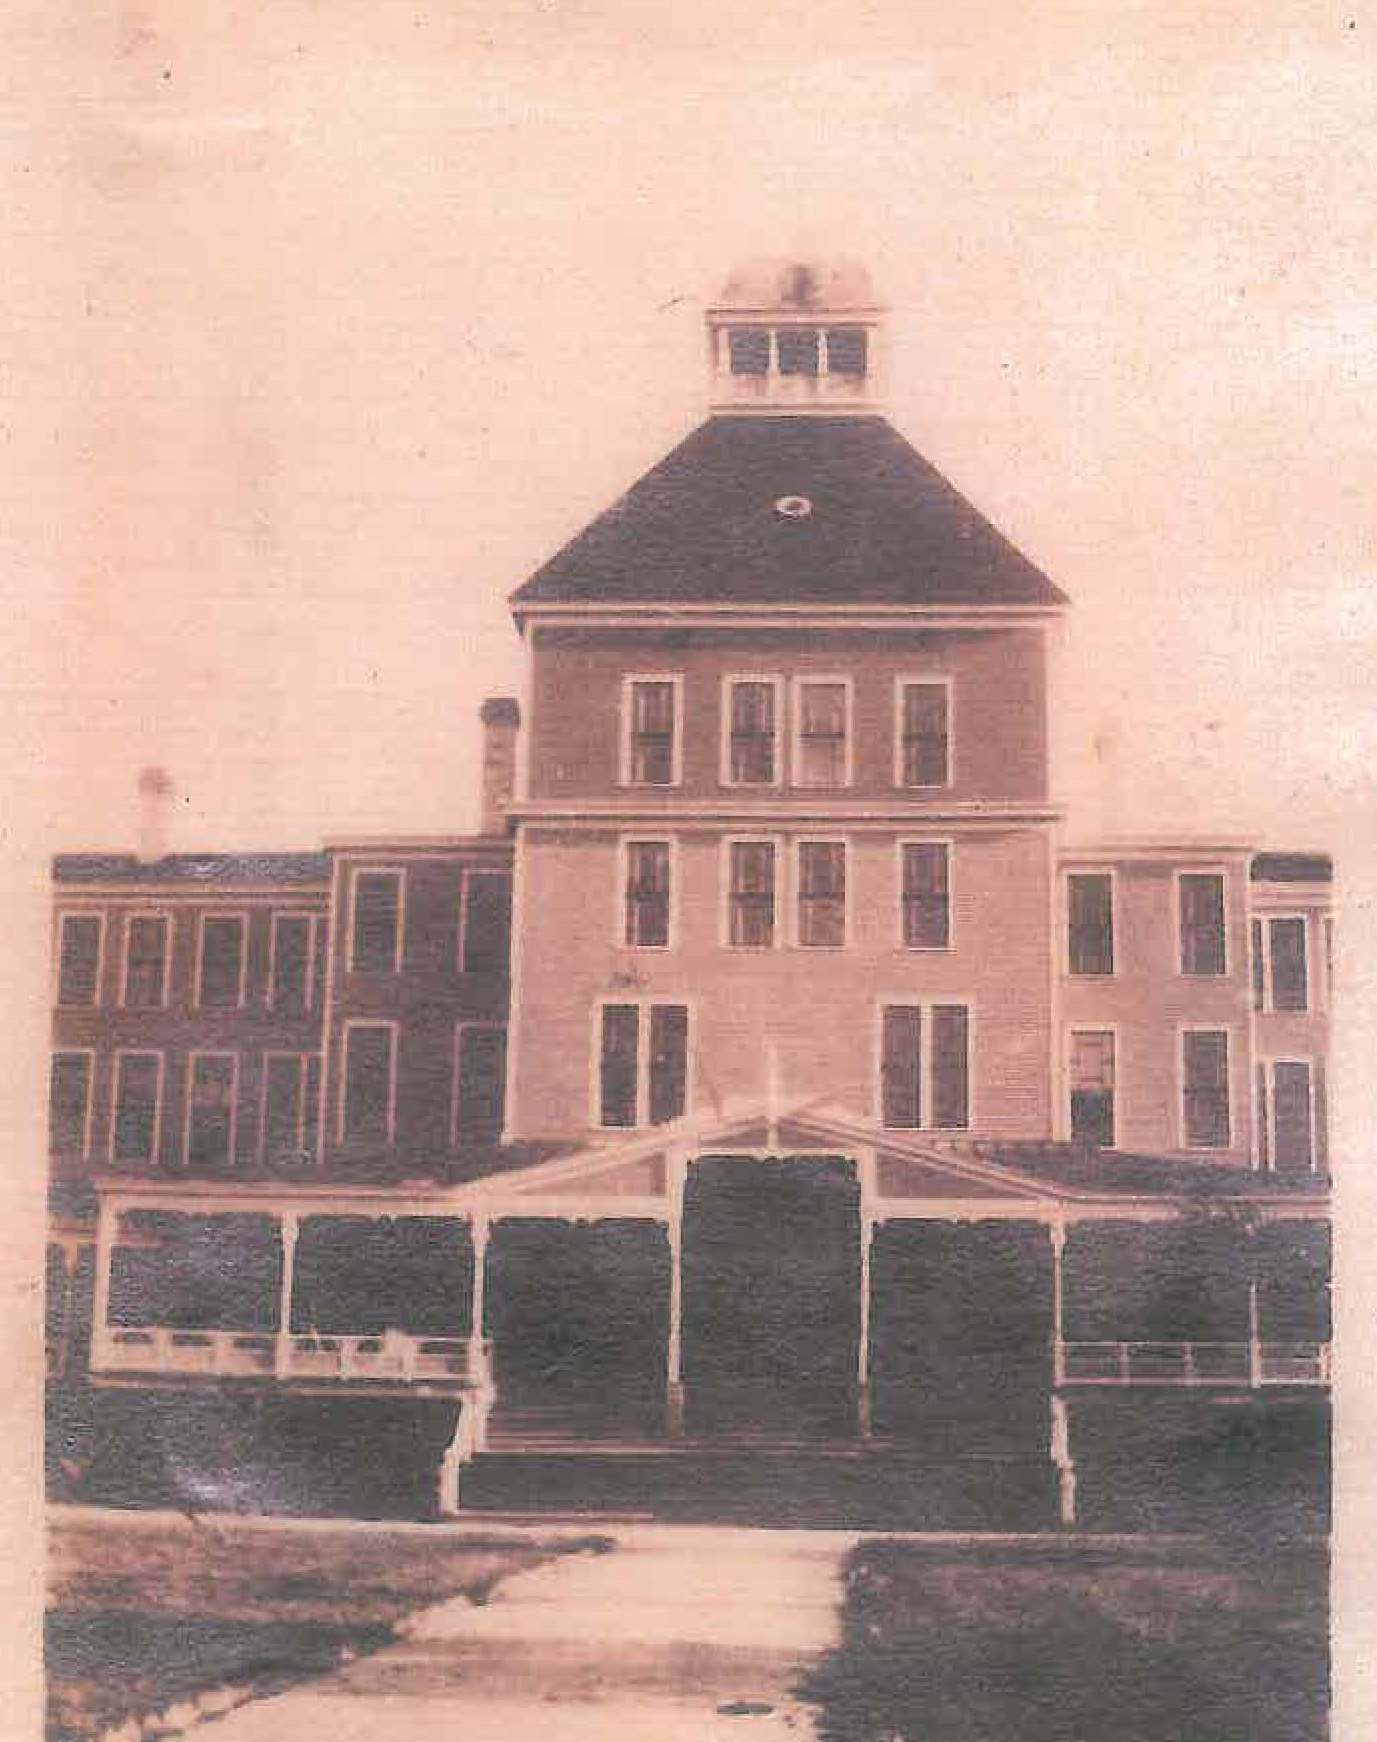 Hotel Punta Gorda early circa 1900s